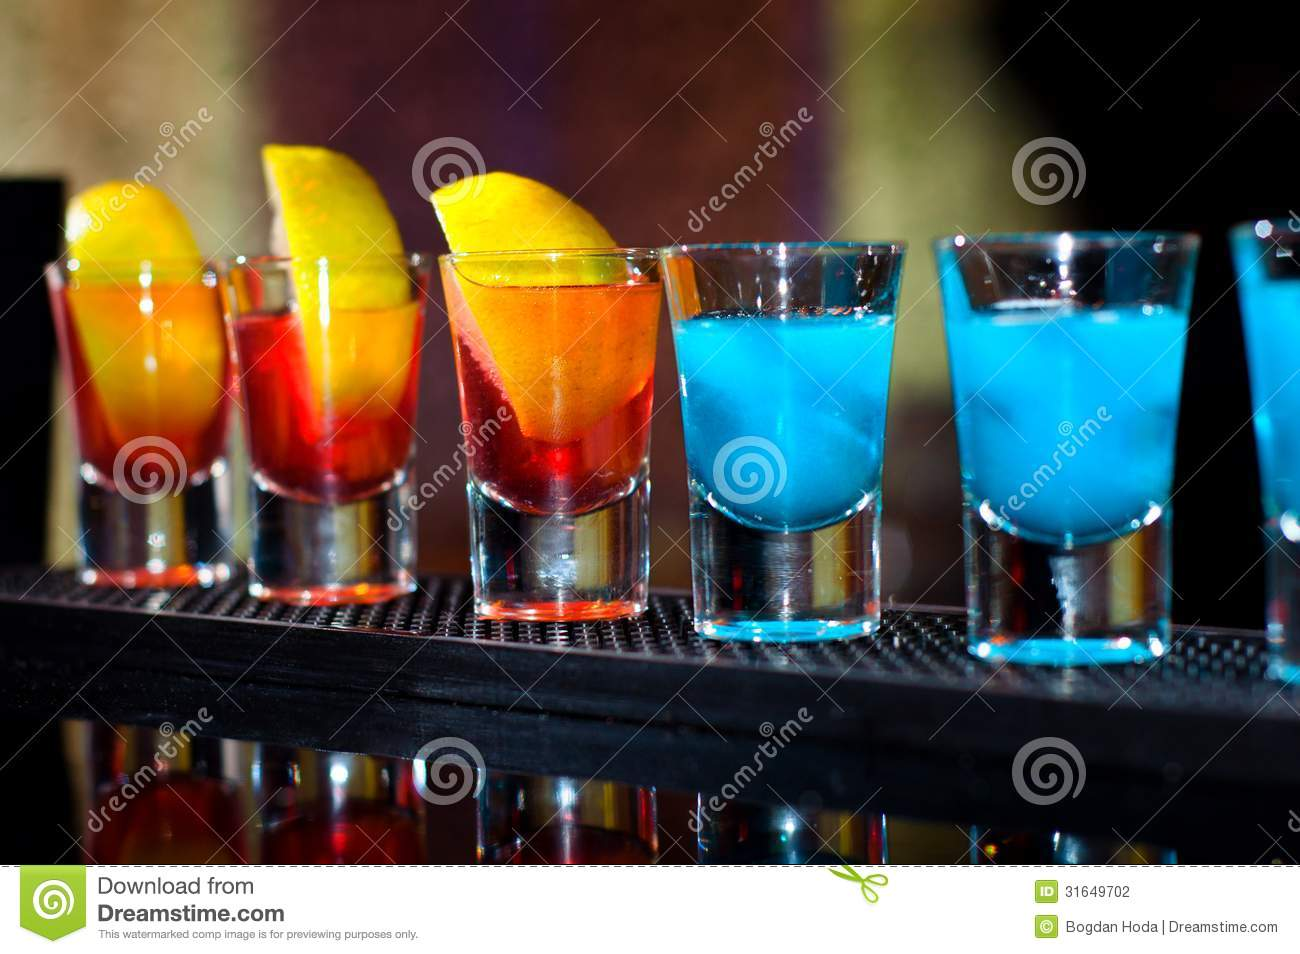 1000  images about WTPA?! on Pinterest | Alcohol shots, Alcohol ...